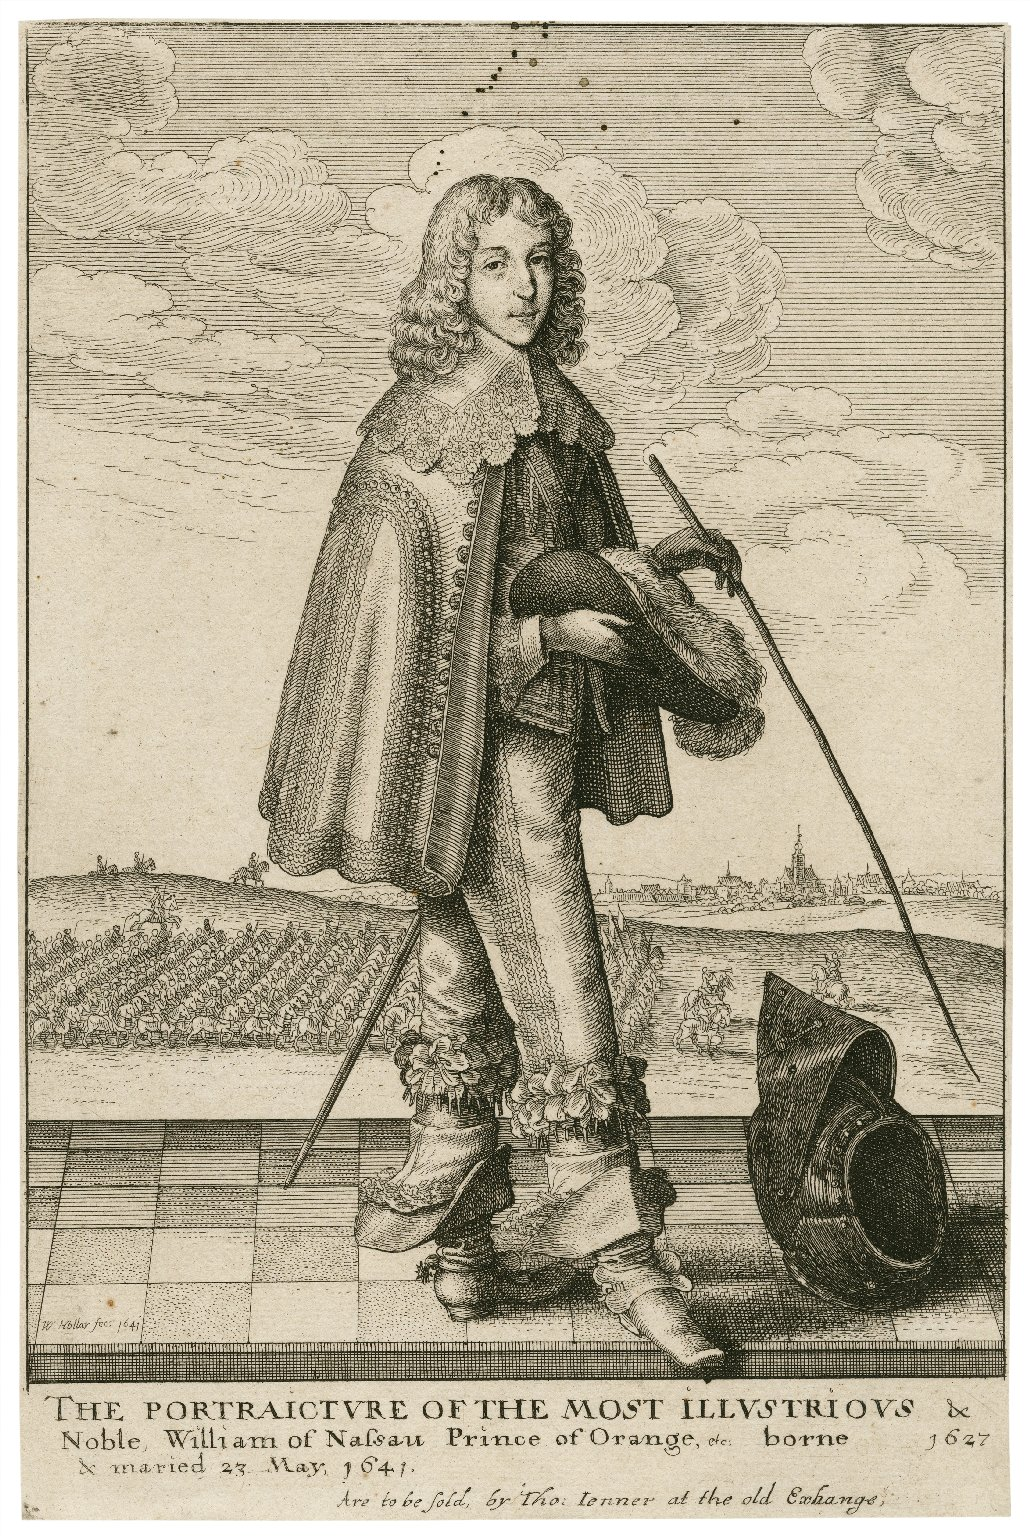 The portraicture of the most illustrious & noble, William of Nassau Prince of Orange, etc., borne 1627 [sic] & maried 23 May 1641 [graphic] / W. Hollar, fec.